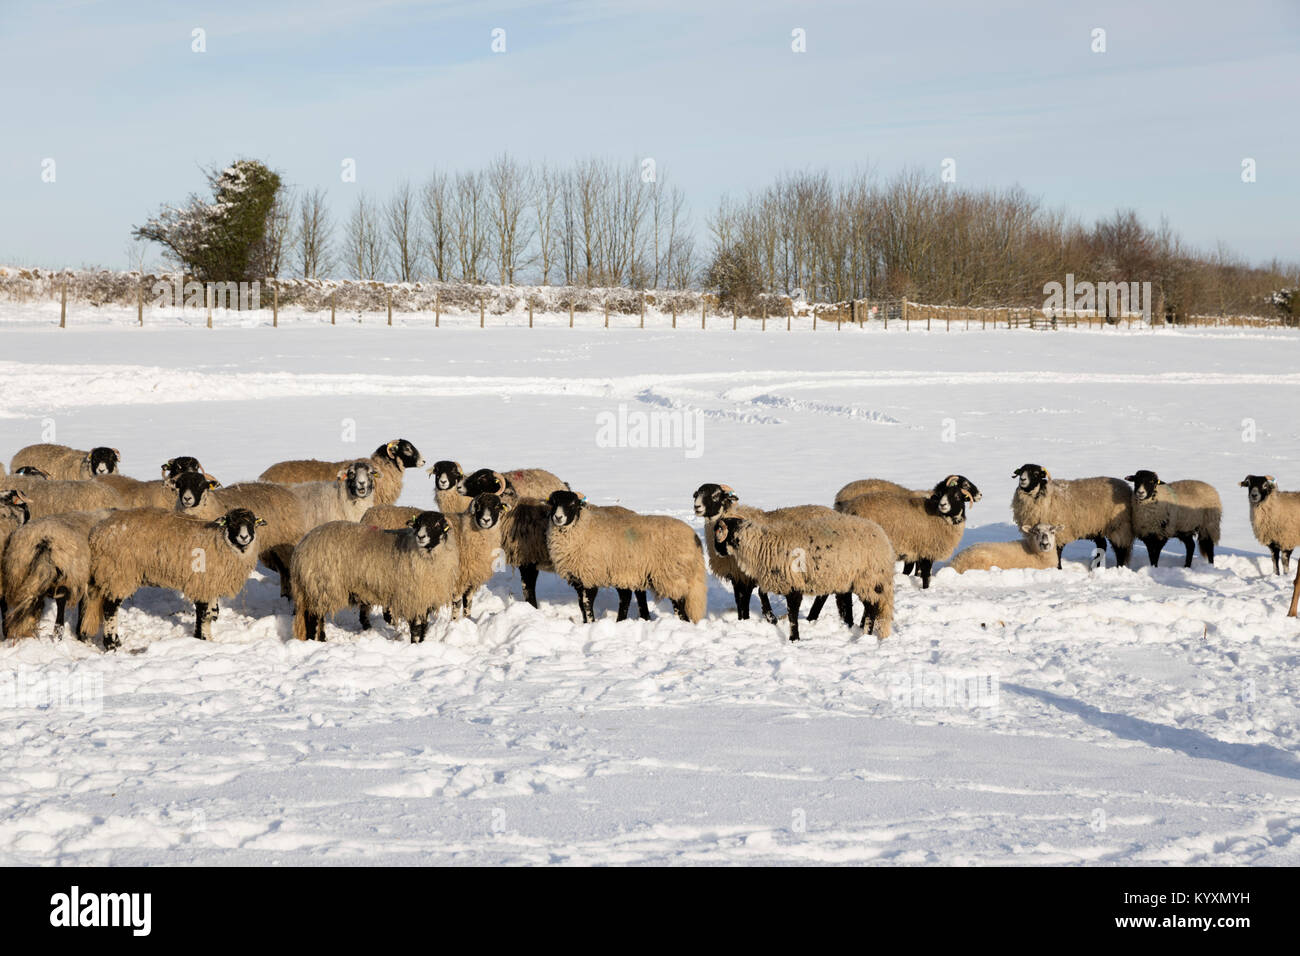 White sheep in snow covered field, Broadway, The Cotswolds, Worcestershire, England, United Kingdom, Europe - Stock Image